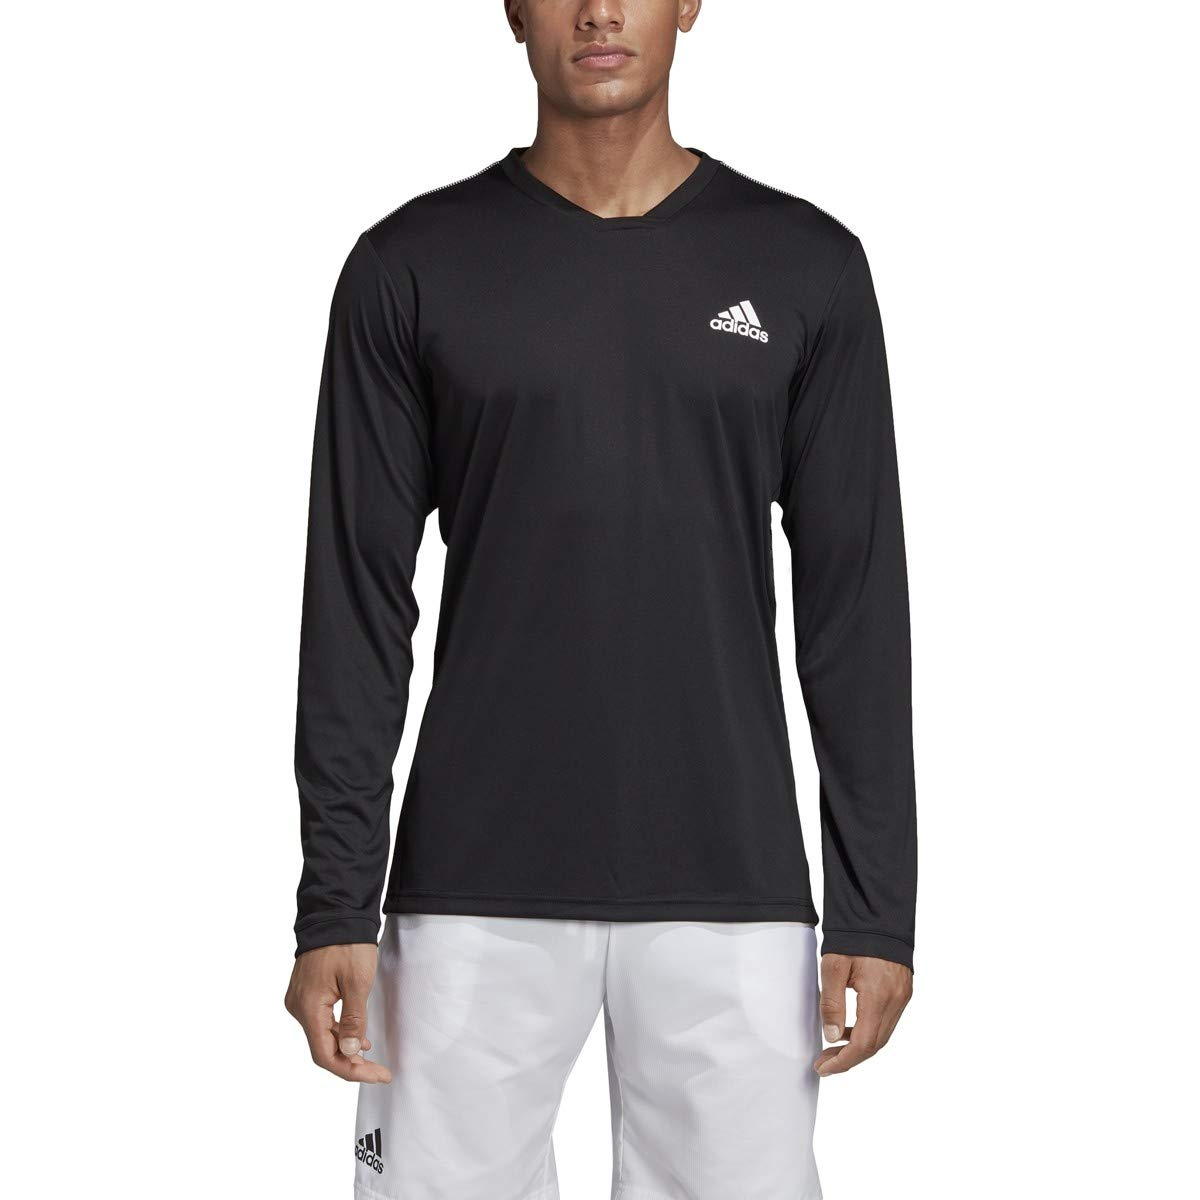 adidas Uv Protect Long-Sleeve Tennis Tee, Black/White, Small